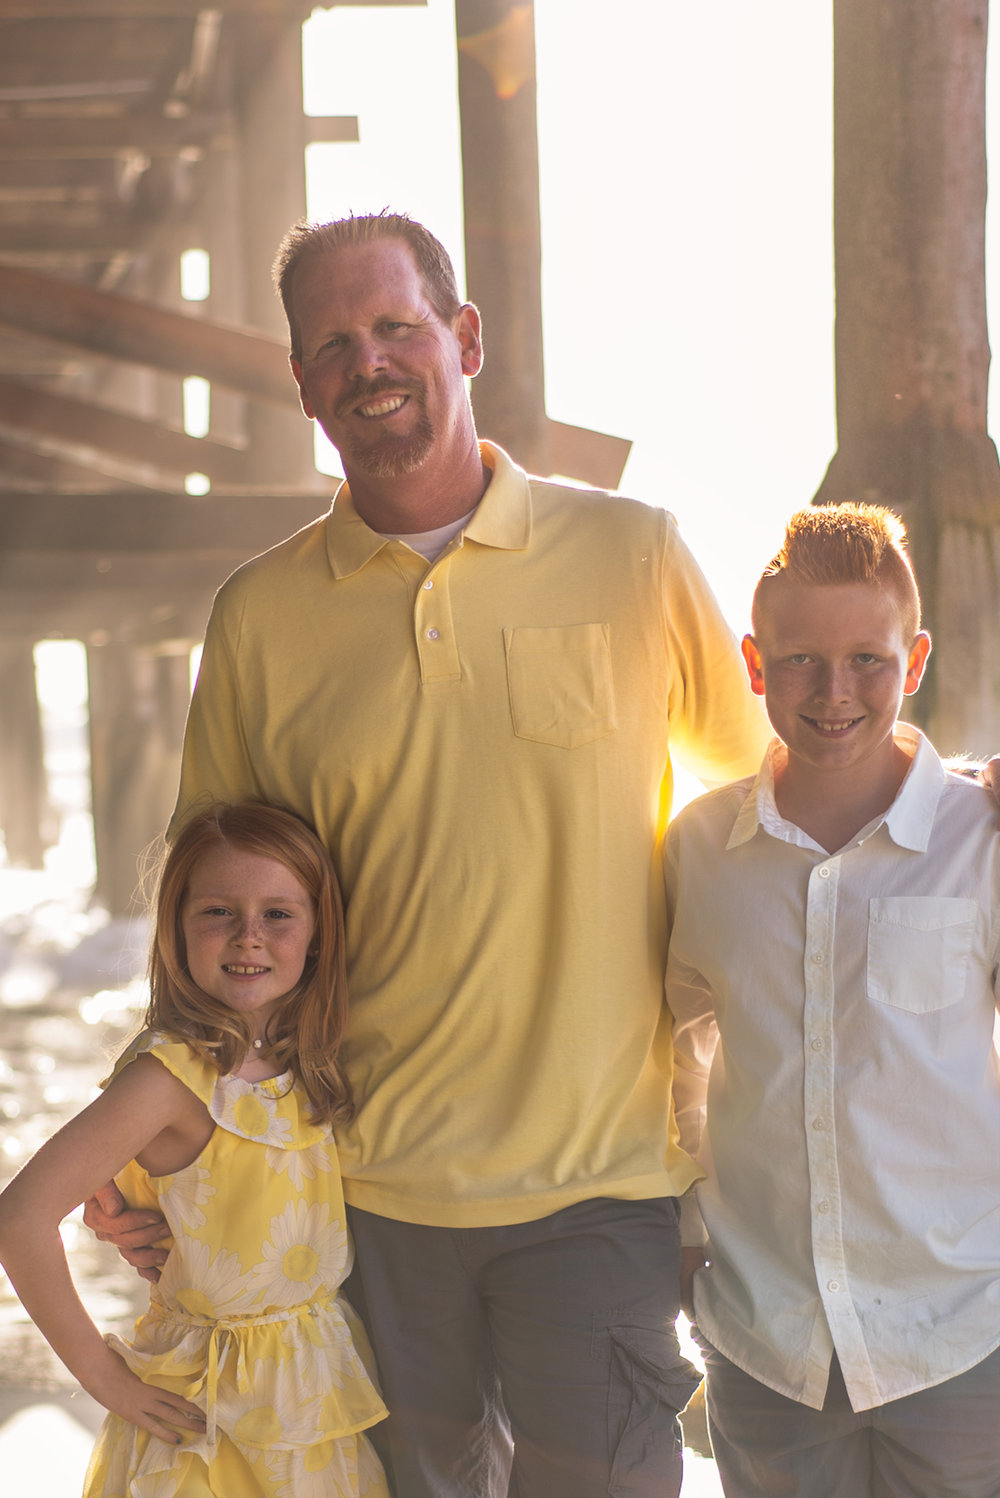 Family, San Diego, Yellow, Fatherhood, Crystal Pier, Bare feet, Beach